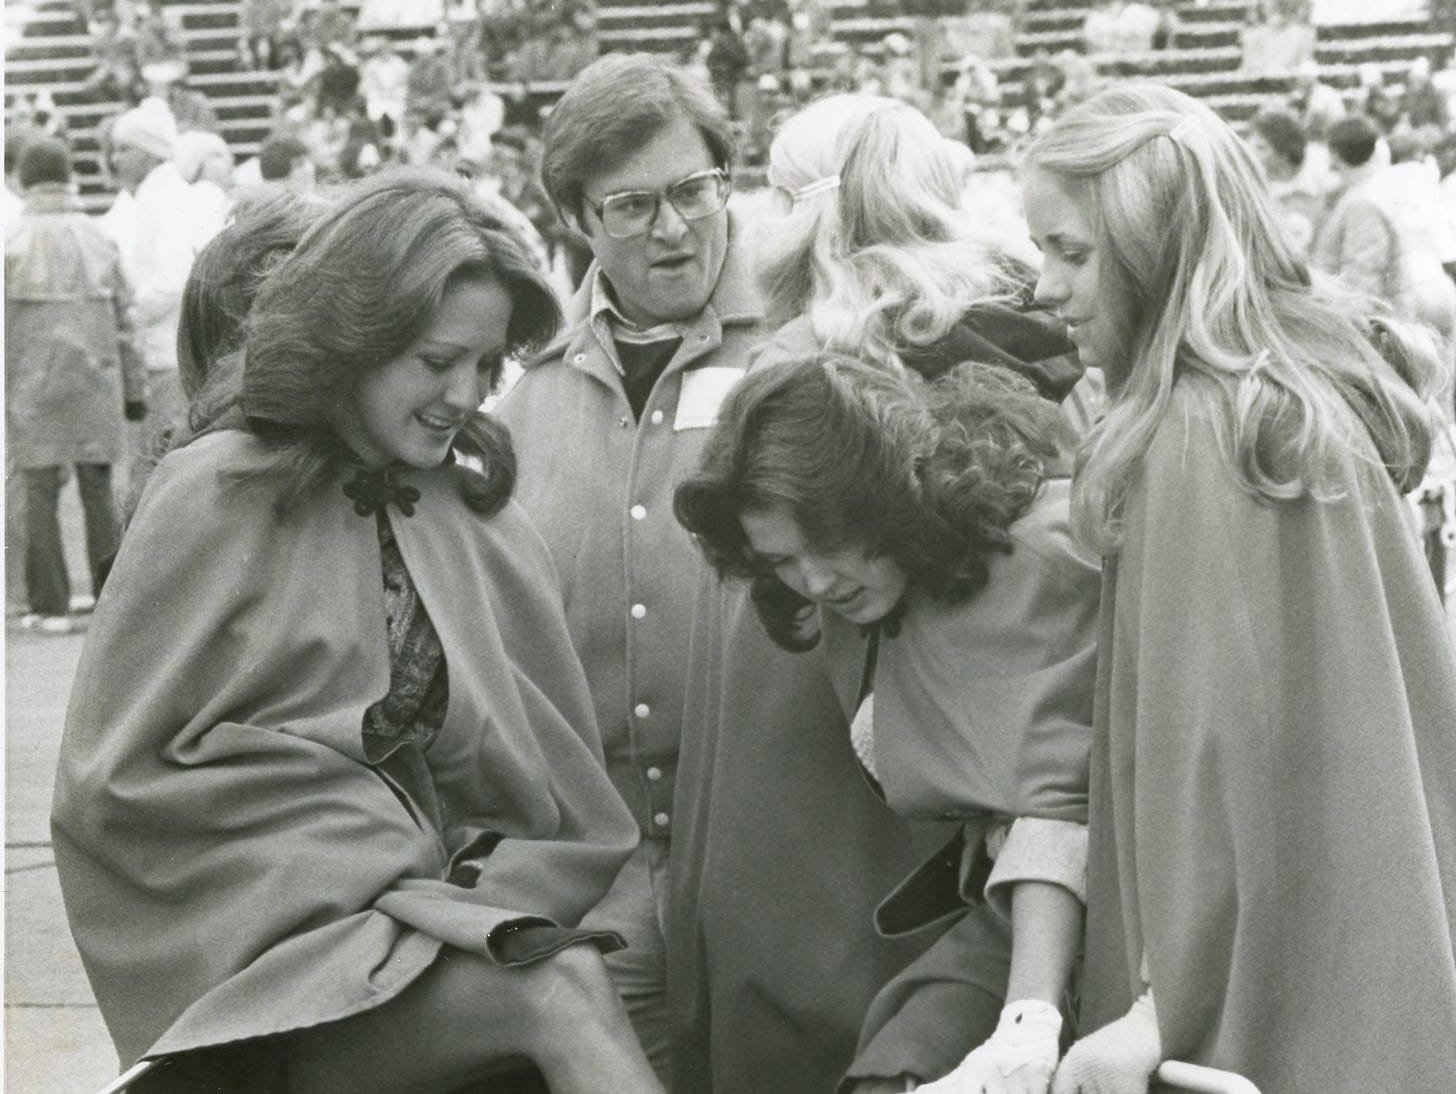 UT majorette Teresa Ray keeps her feet warm on the sidelines during a 1977 football game.